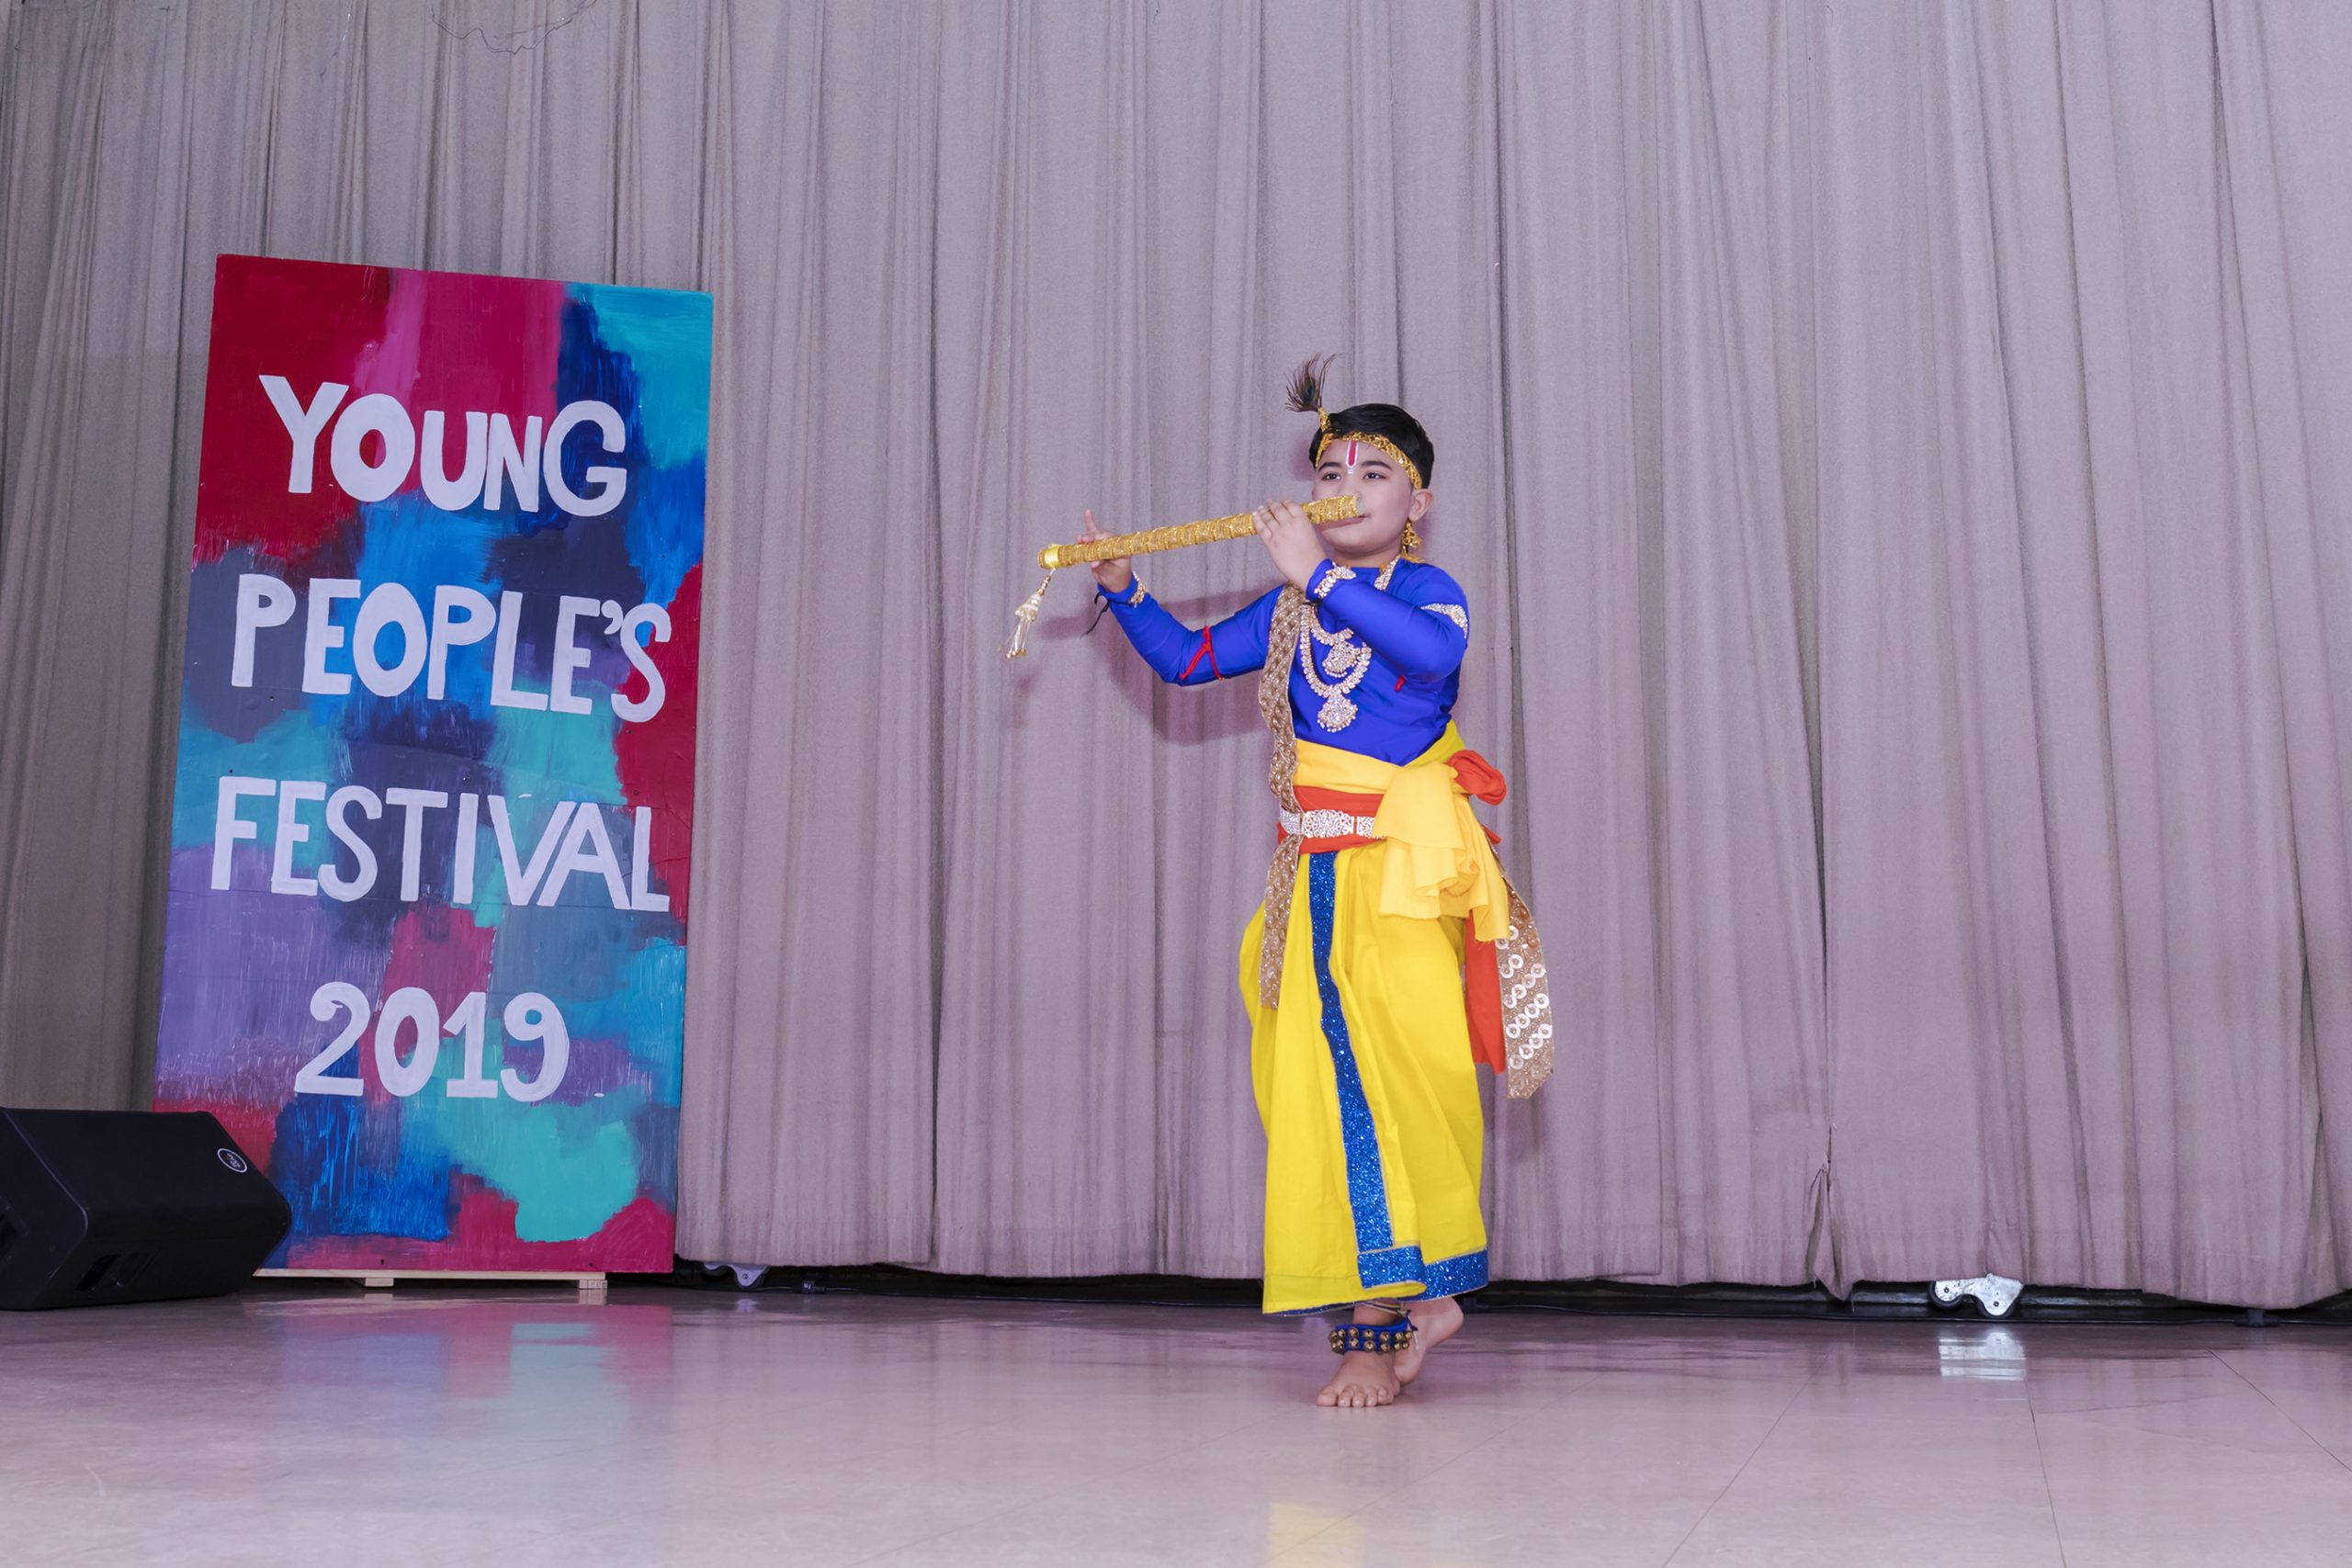 A young performer at the Young People's Festival 2019